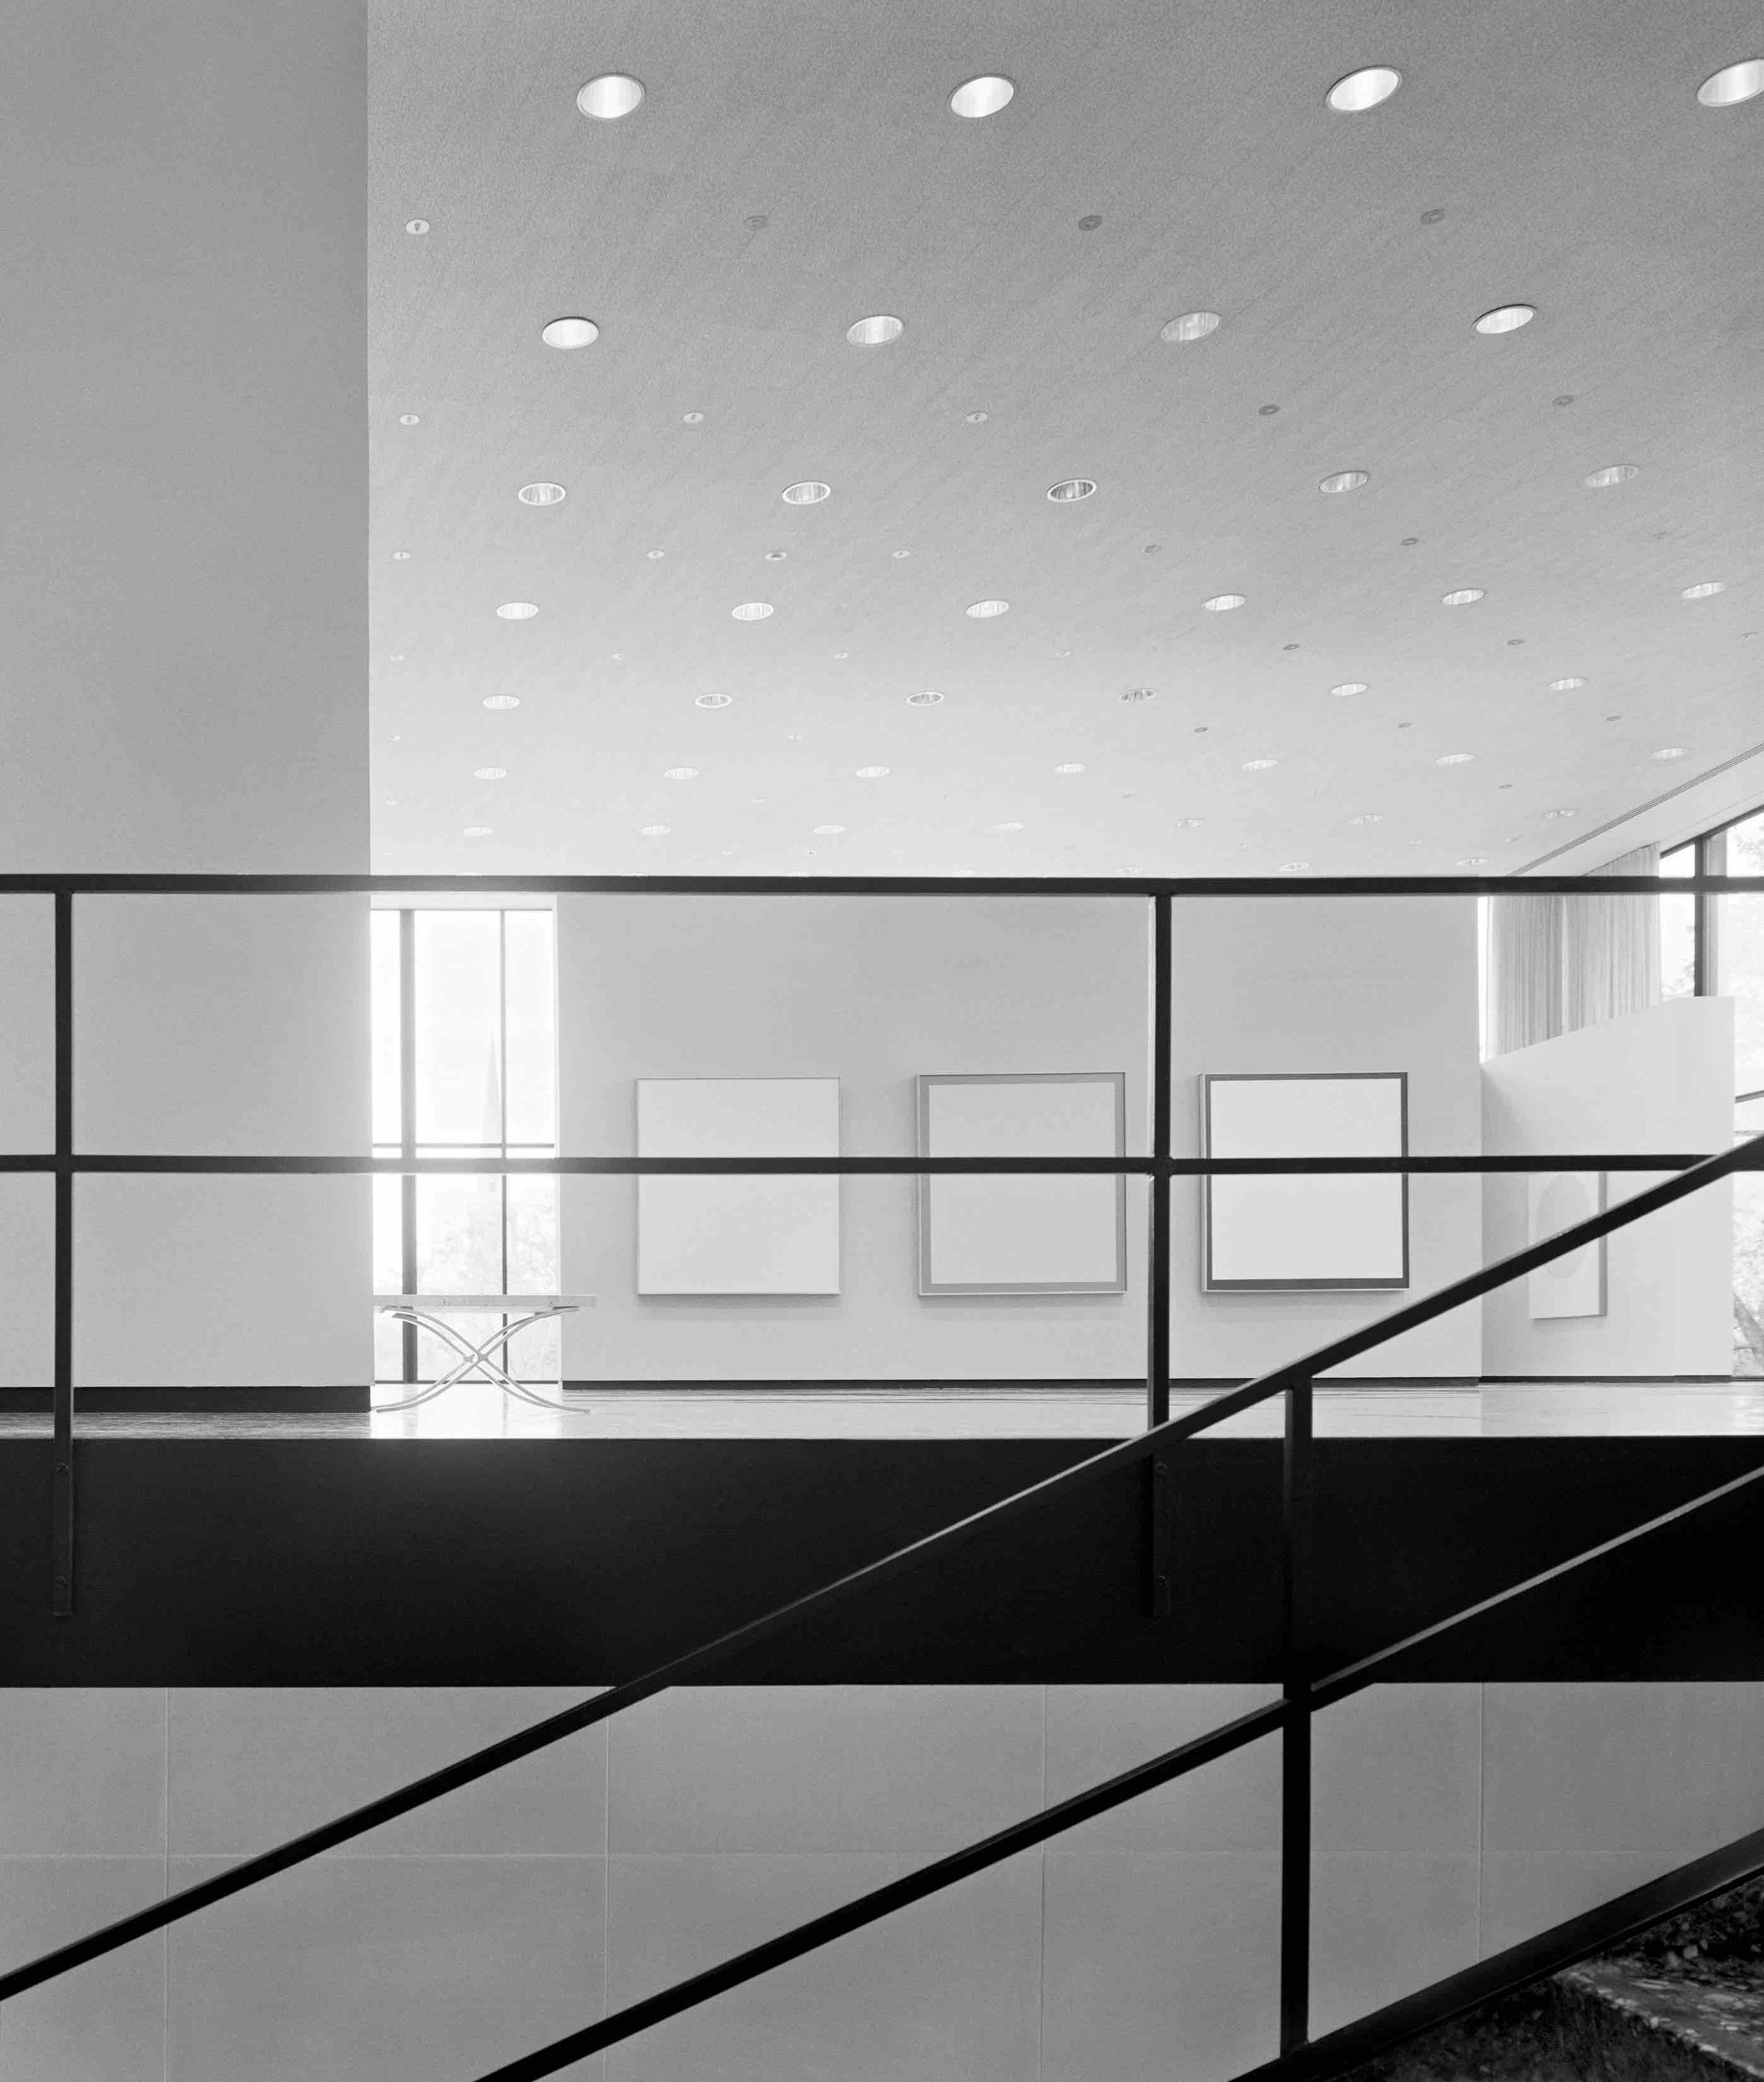 Ludwig Mies van der Rohe, Museum of Fine Arts,Houston, Cullinan Hall (Houston, TX) 1958